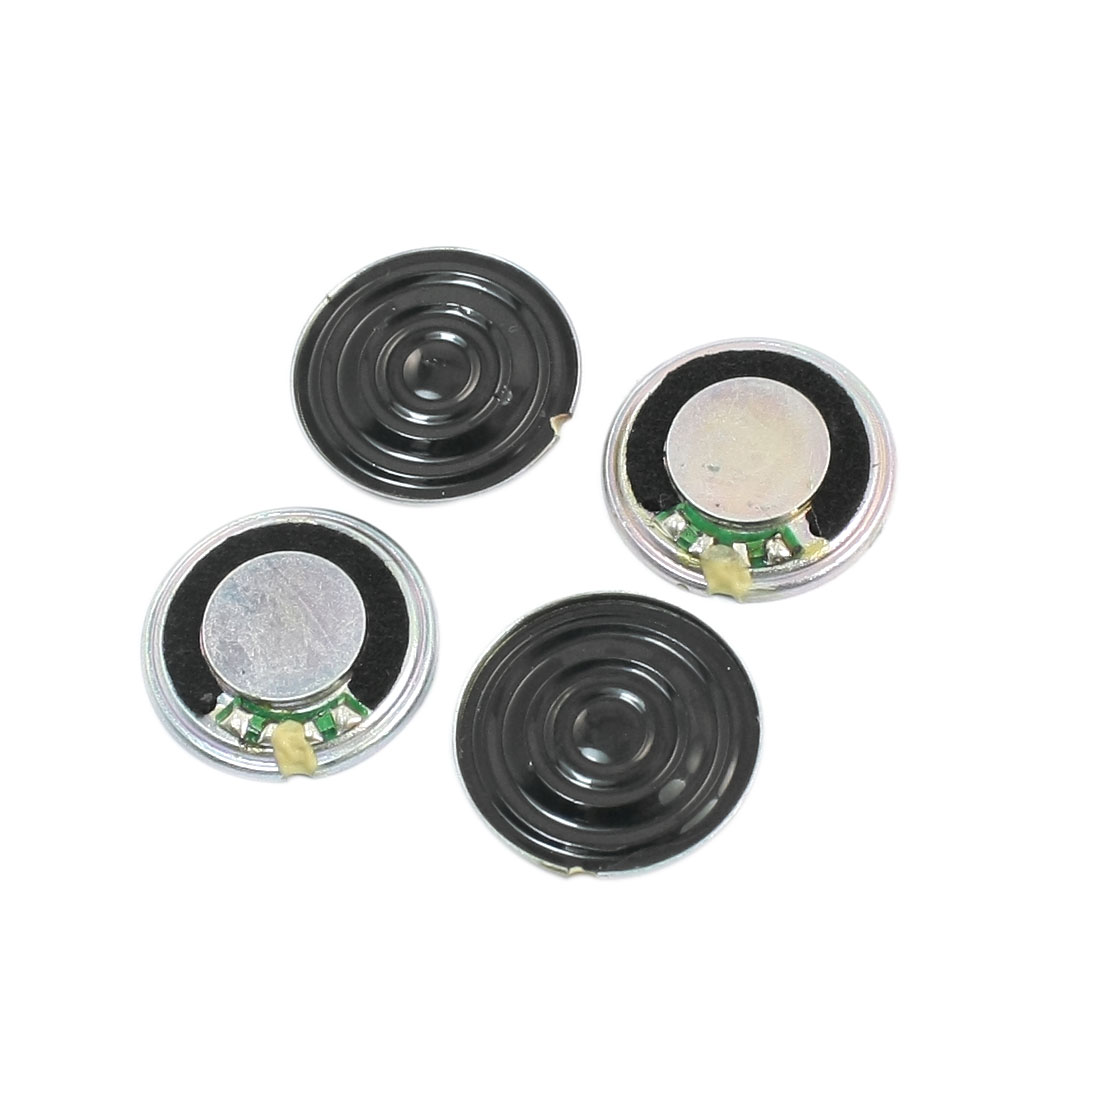 20mm Dia Round Metal Case Internal Magnet Type Toy Interphone Speaker Loudspeaker Horn Trumpet 1W 8 Ohm 4Pcs